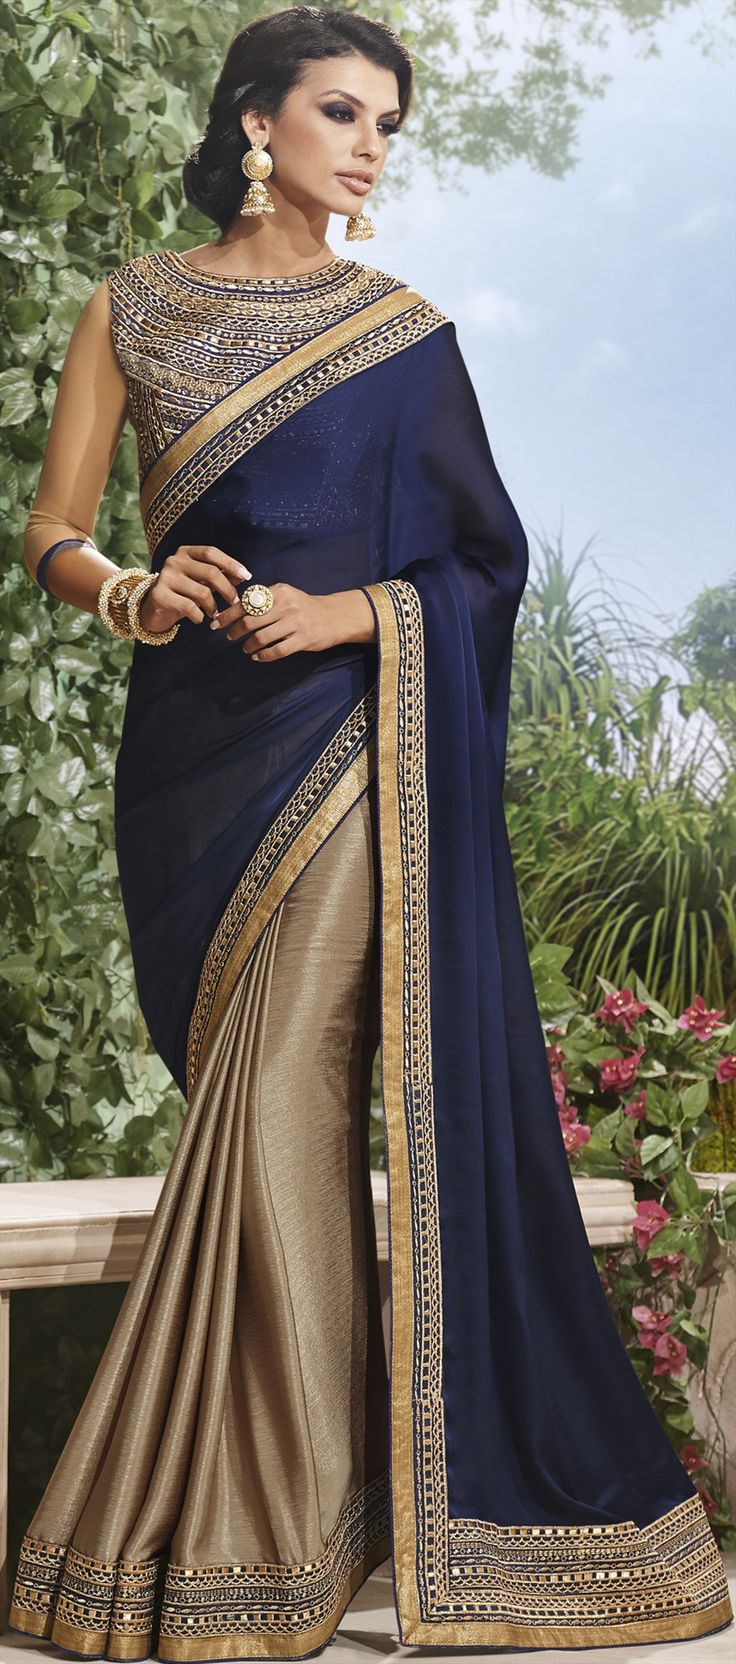 154792: Blue, Beige and Brown color family Saree with matching unstitched blouse.